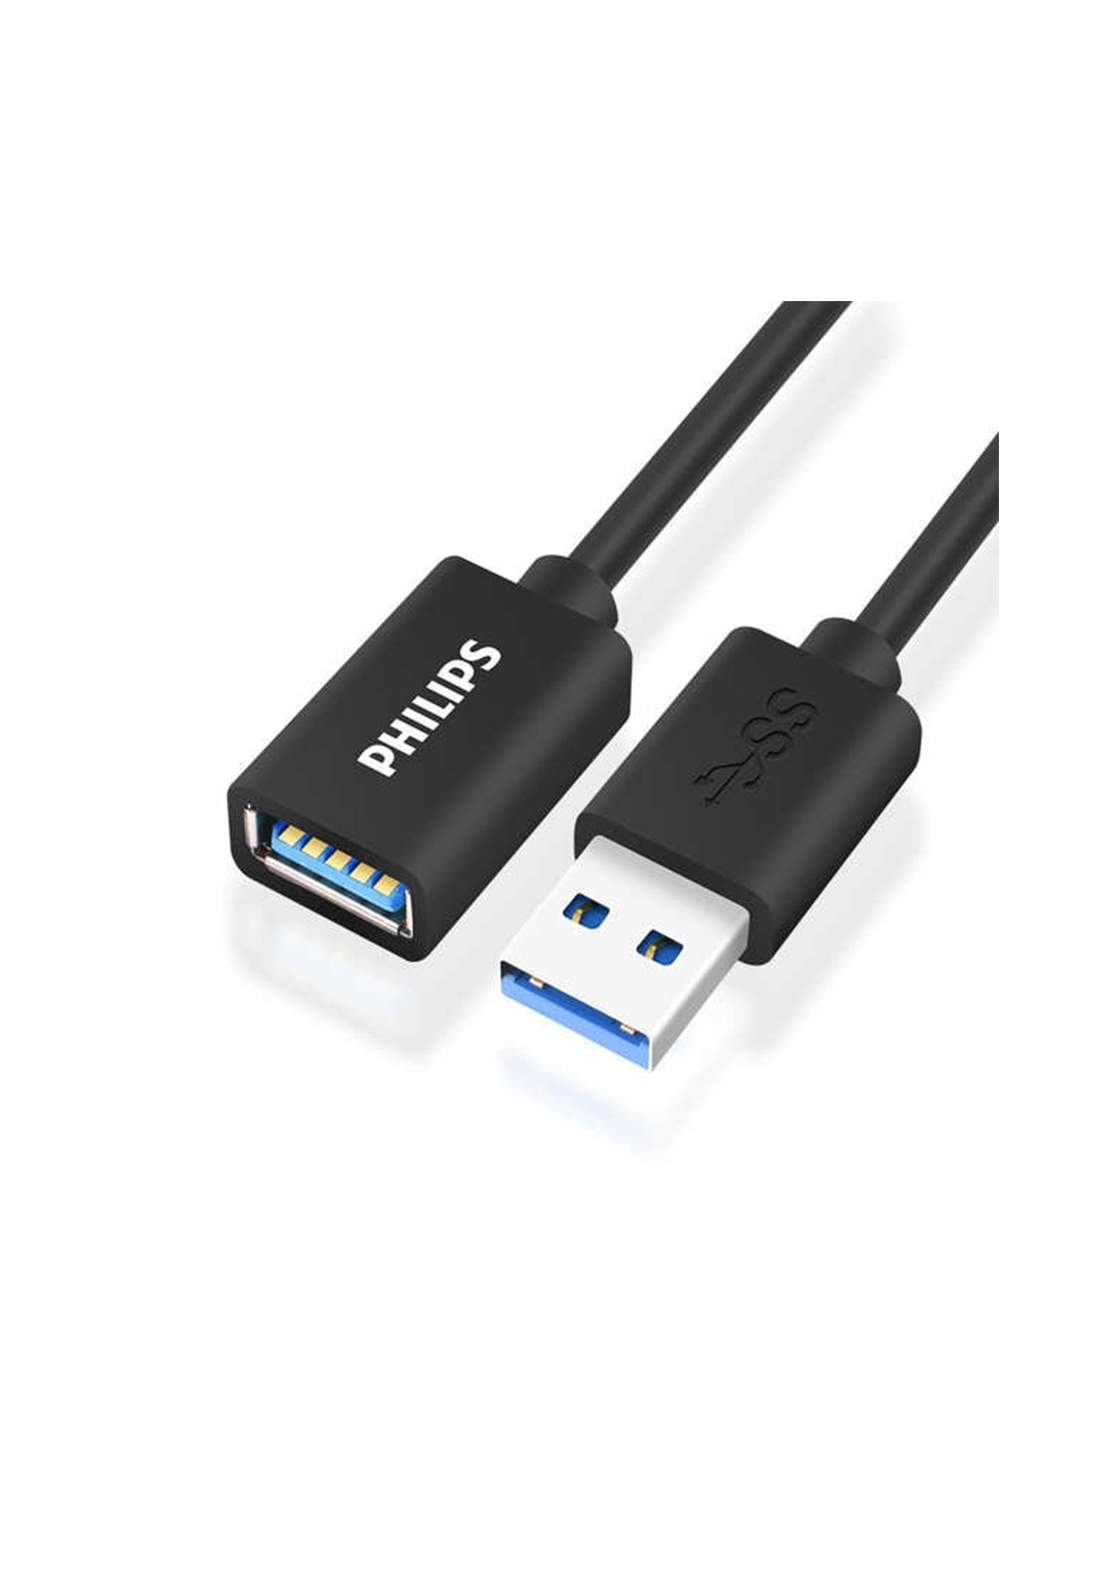 Philips SWR156T/93 Usb 3.0 Extension Cable  Male To Female Computer - Black كابل